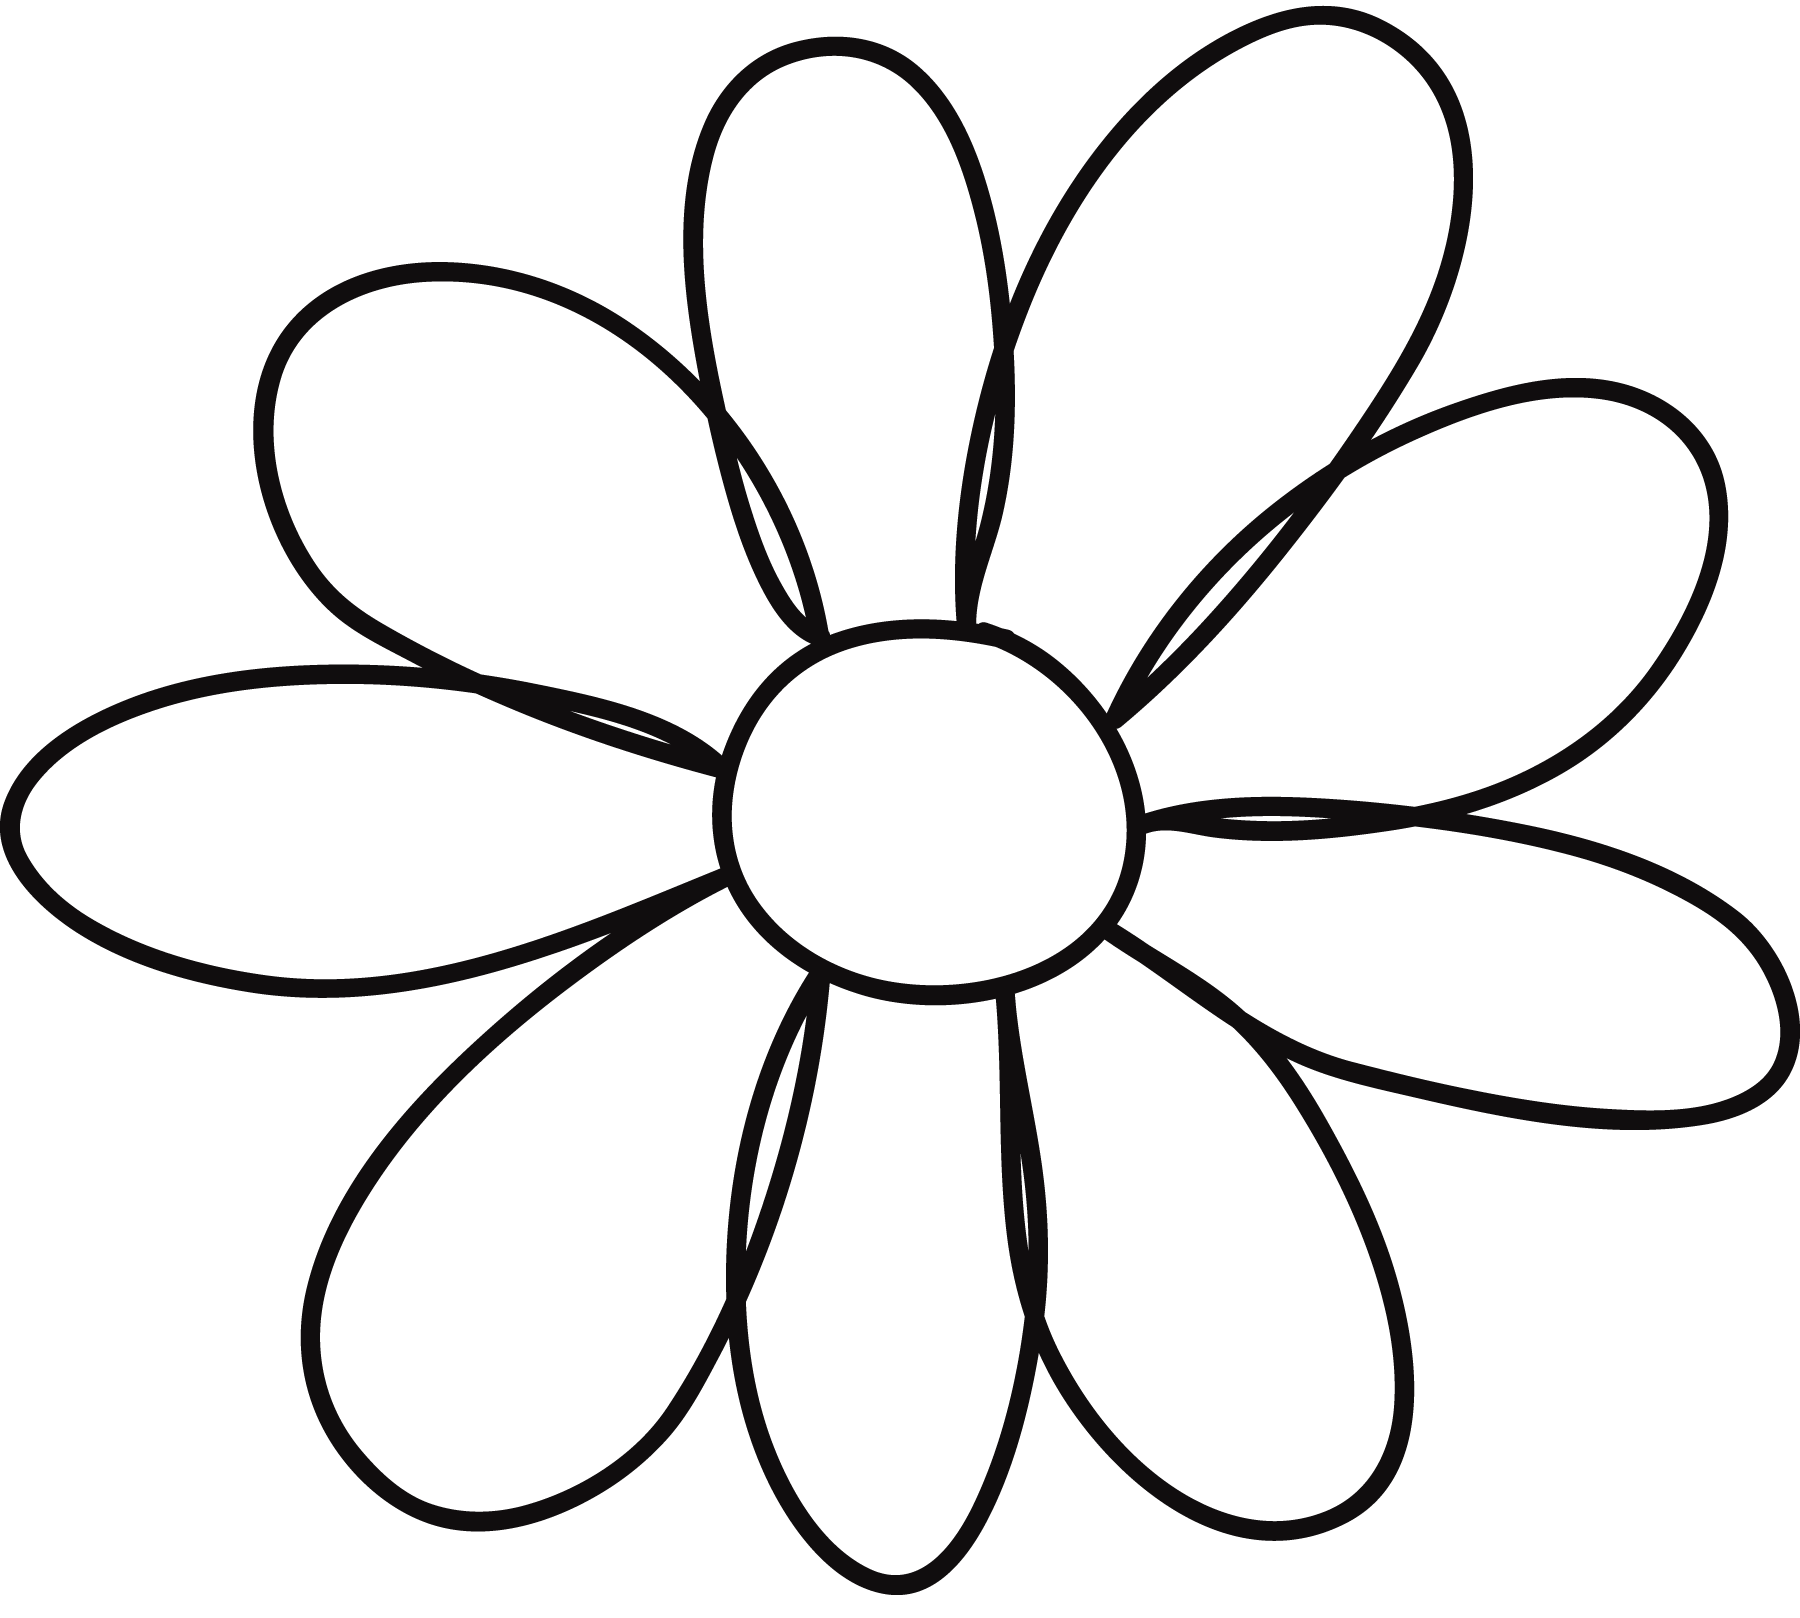 Flower petal clipart black and white png freeuse download 10 petal flower template - ClipArt Best - ClipArt Best | quilting ... png freeuse download